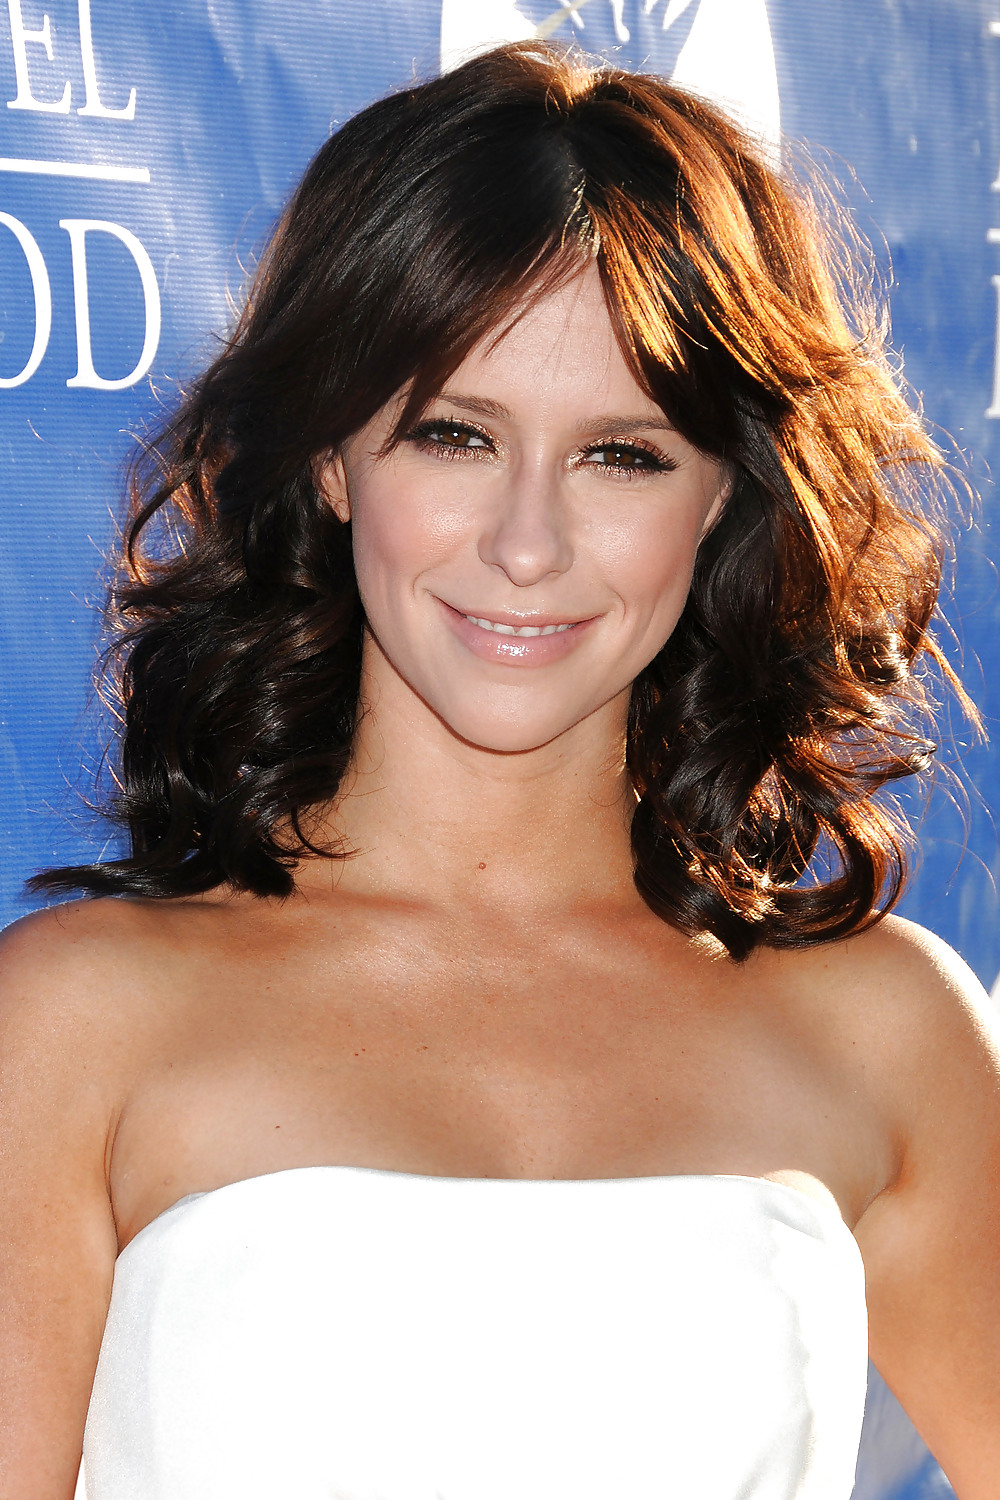 Jennifer Love Hewitt Look Alike Porn - Arnikacompagnie-1435